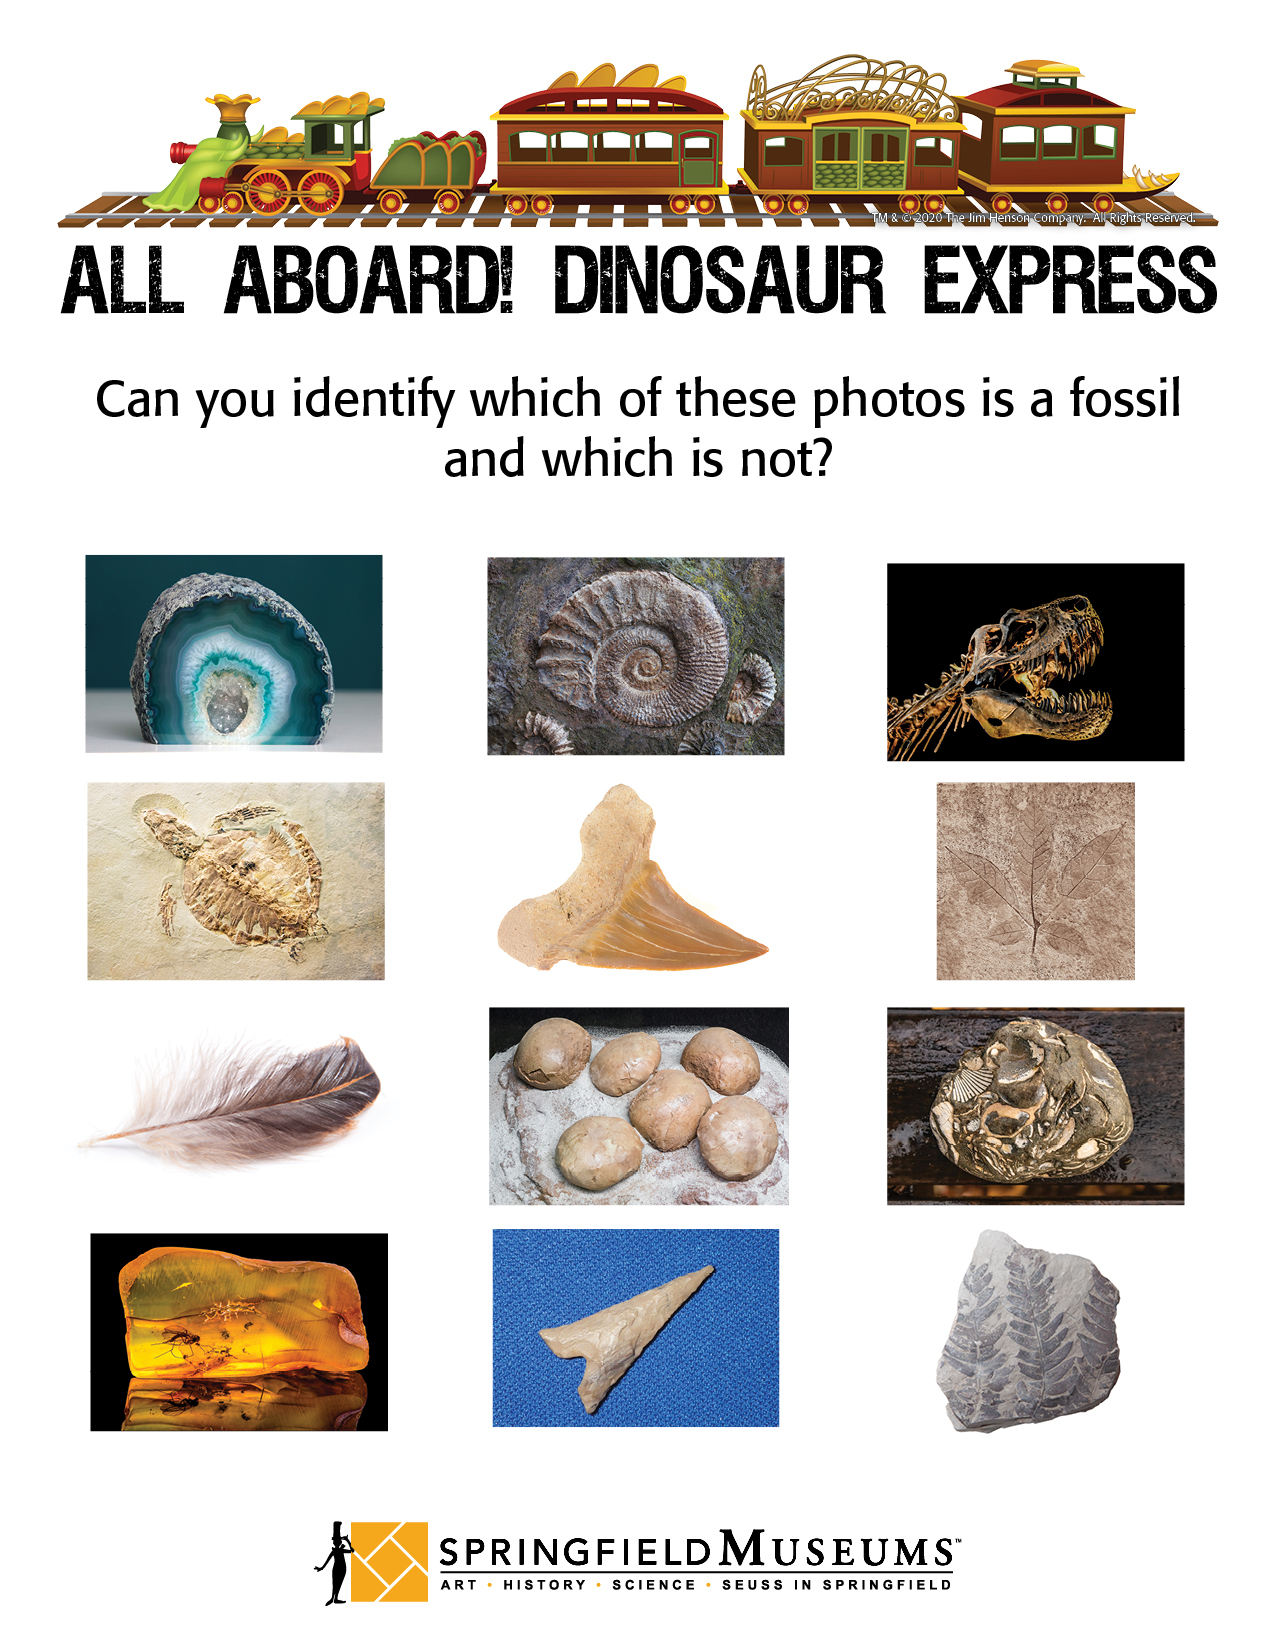 Can you identfy which of these are fossils?